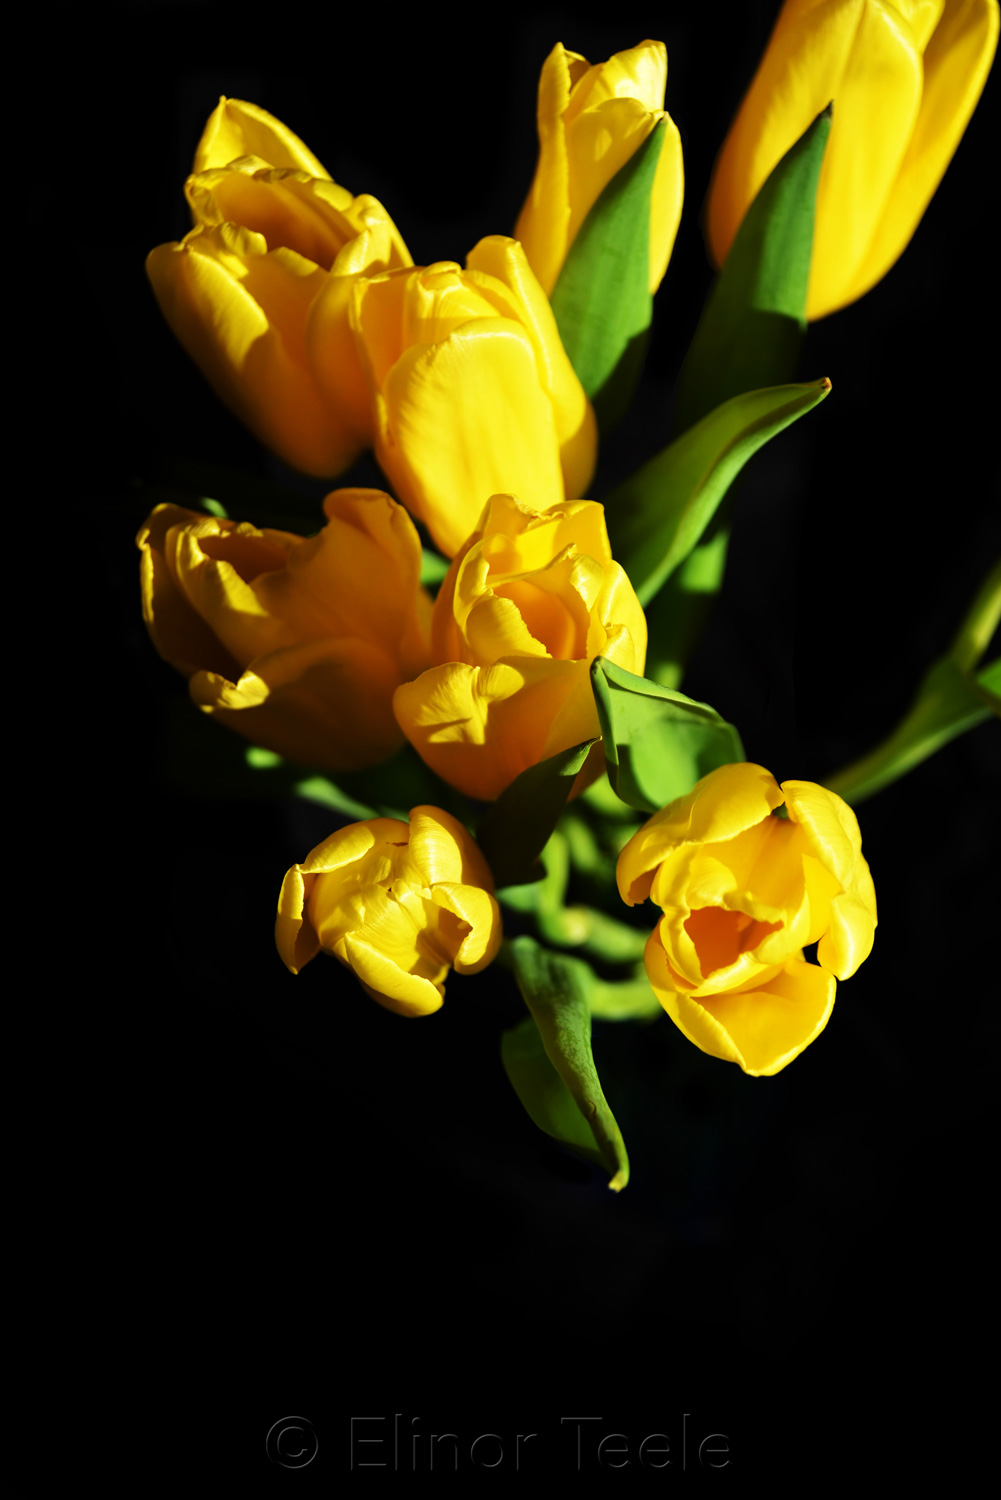 Yellow Tulips on Black Background 5